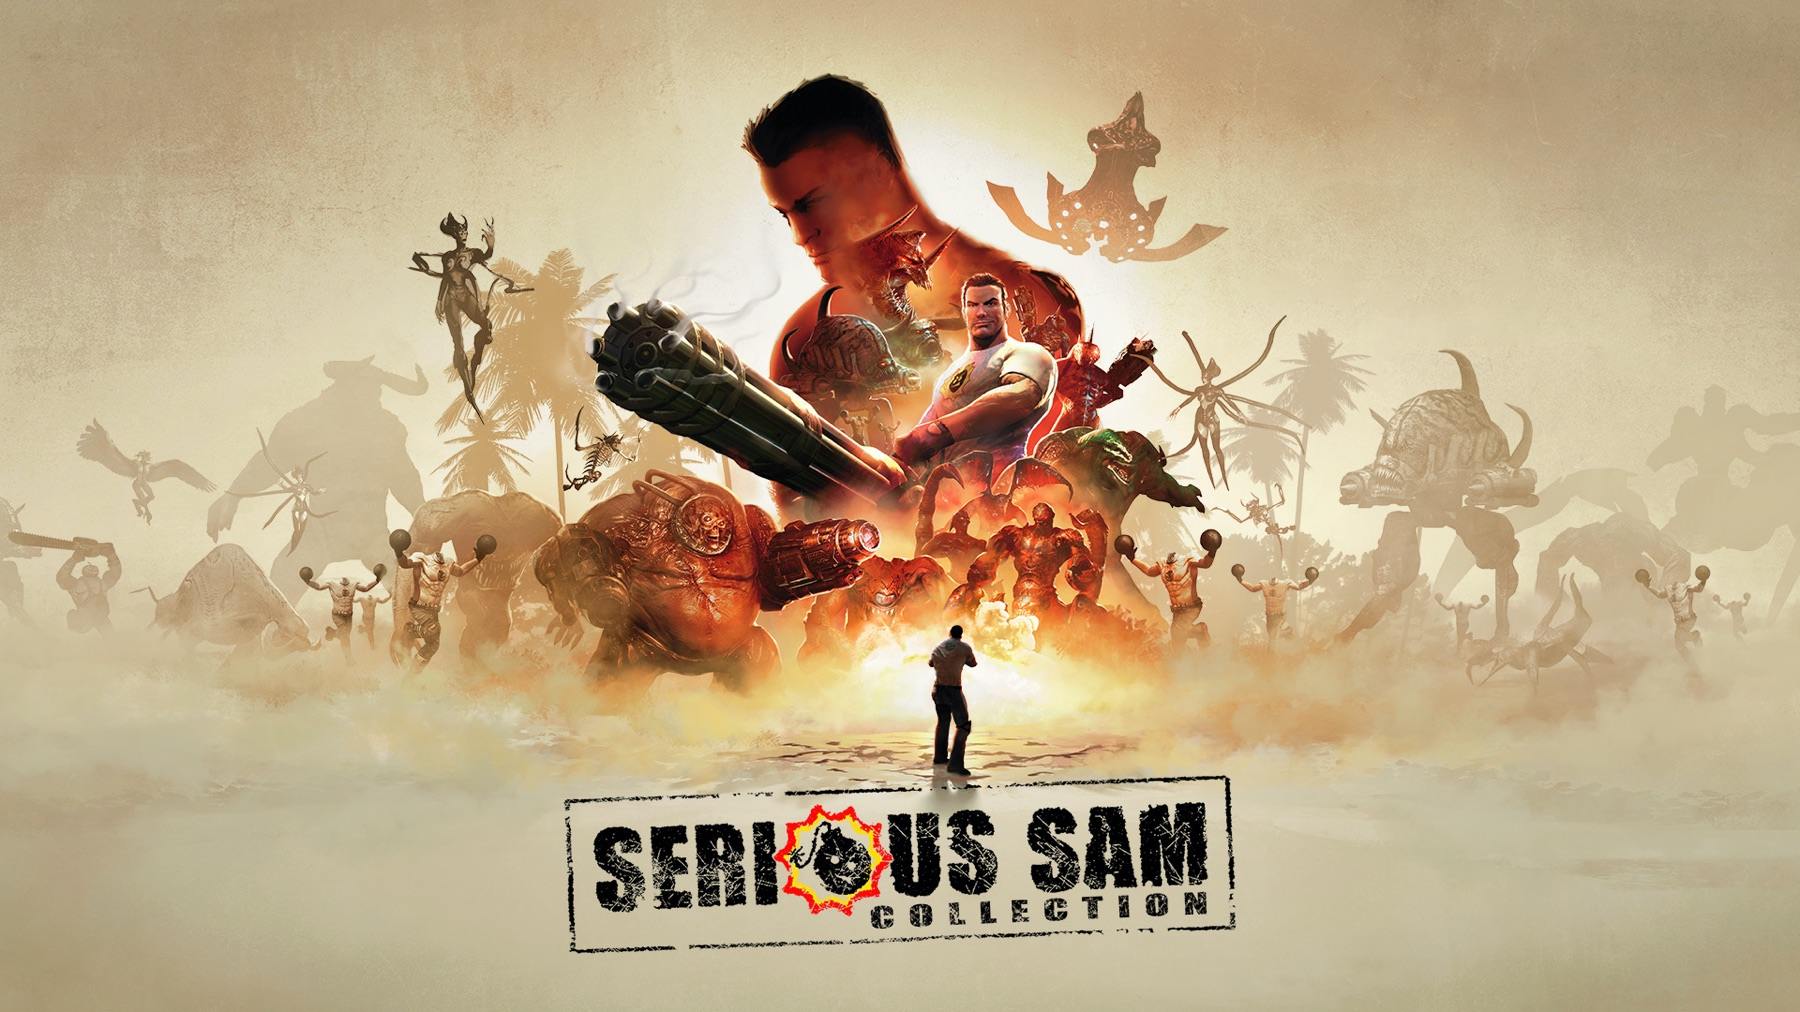 A Serious Sam Collection is coming to Switch screenshot